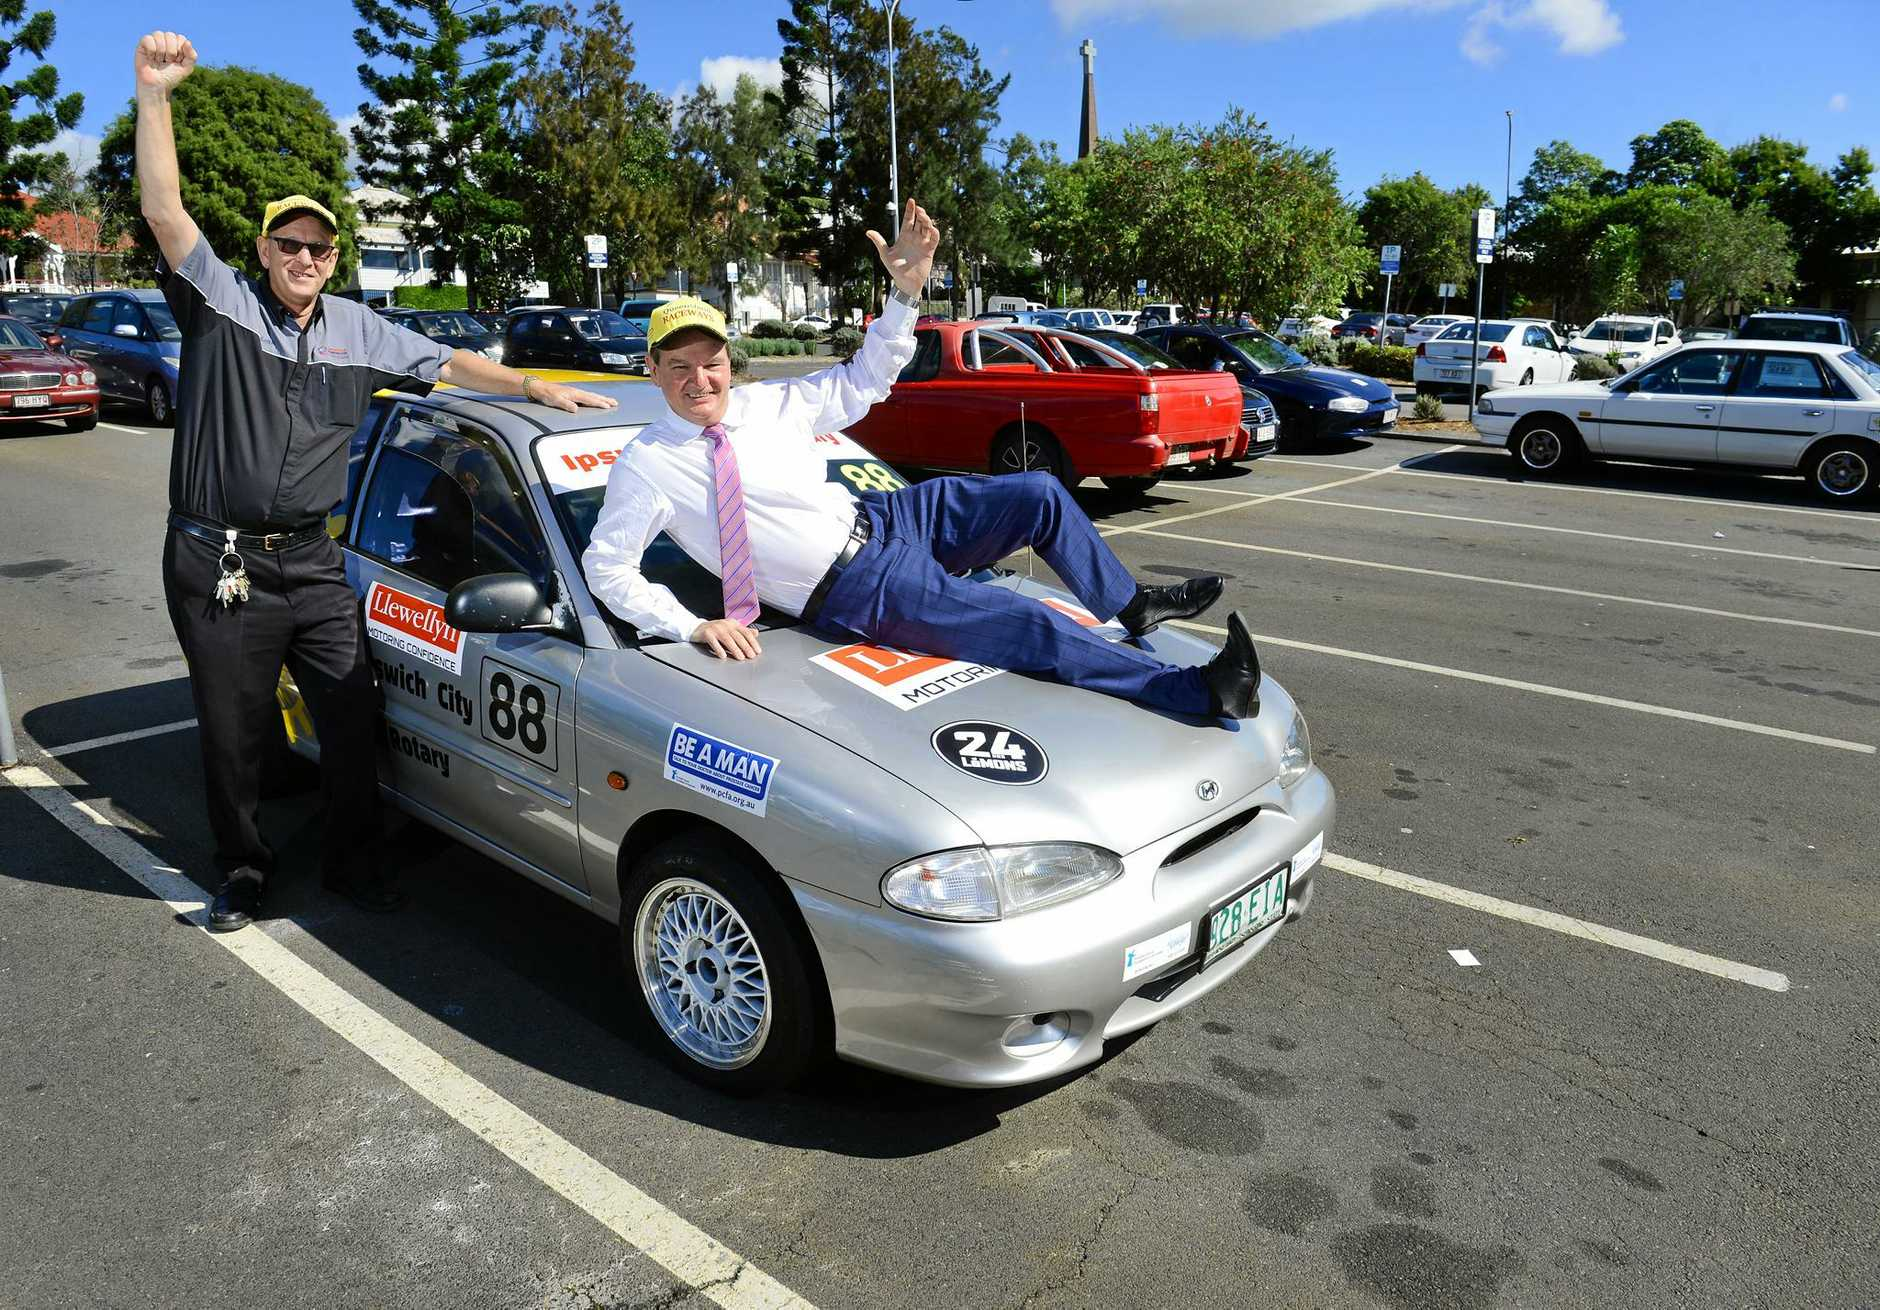 Keith Lewis of Queensland Raceway and Mayor Paul Pisasale celebrate the upcoming 24 Hours of LeMons at Queensland Raceway.